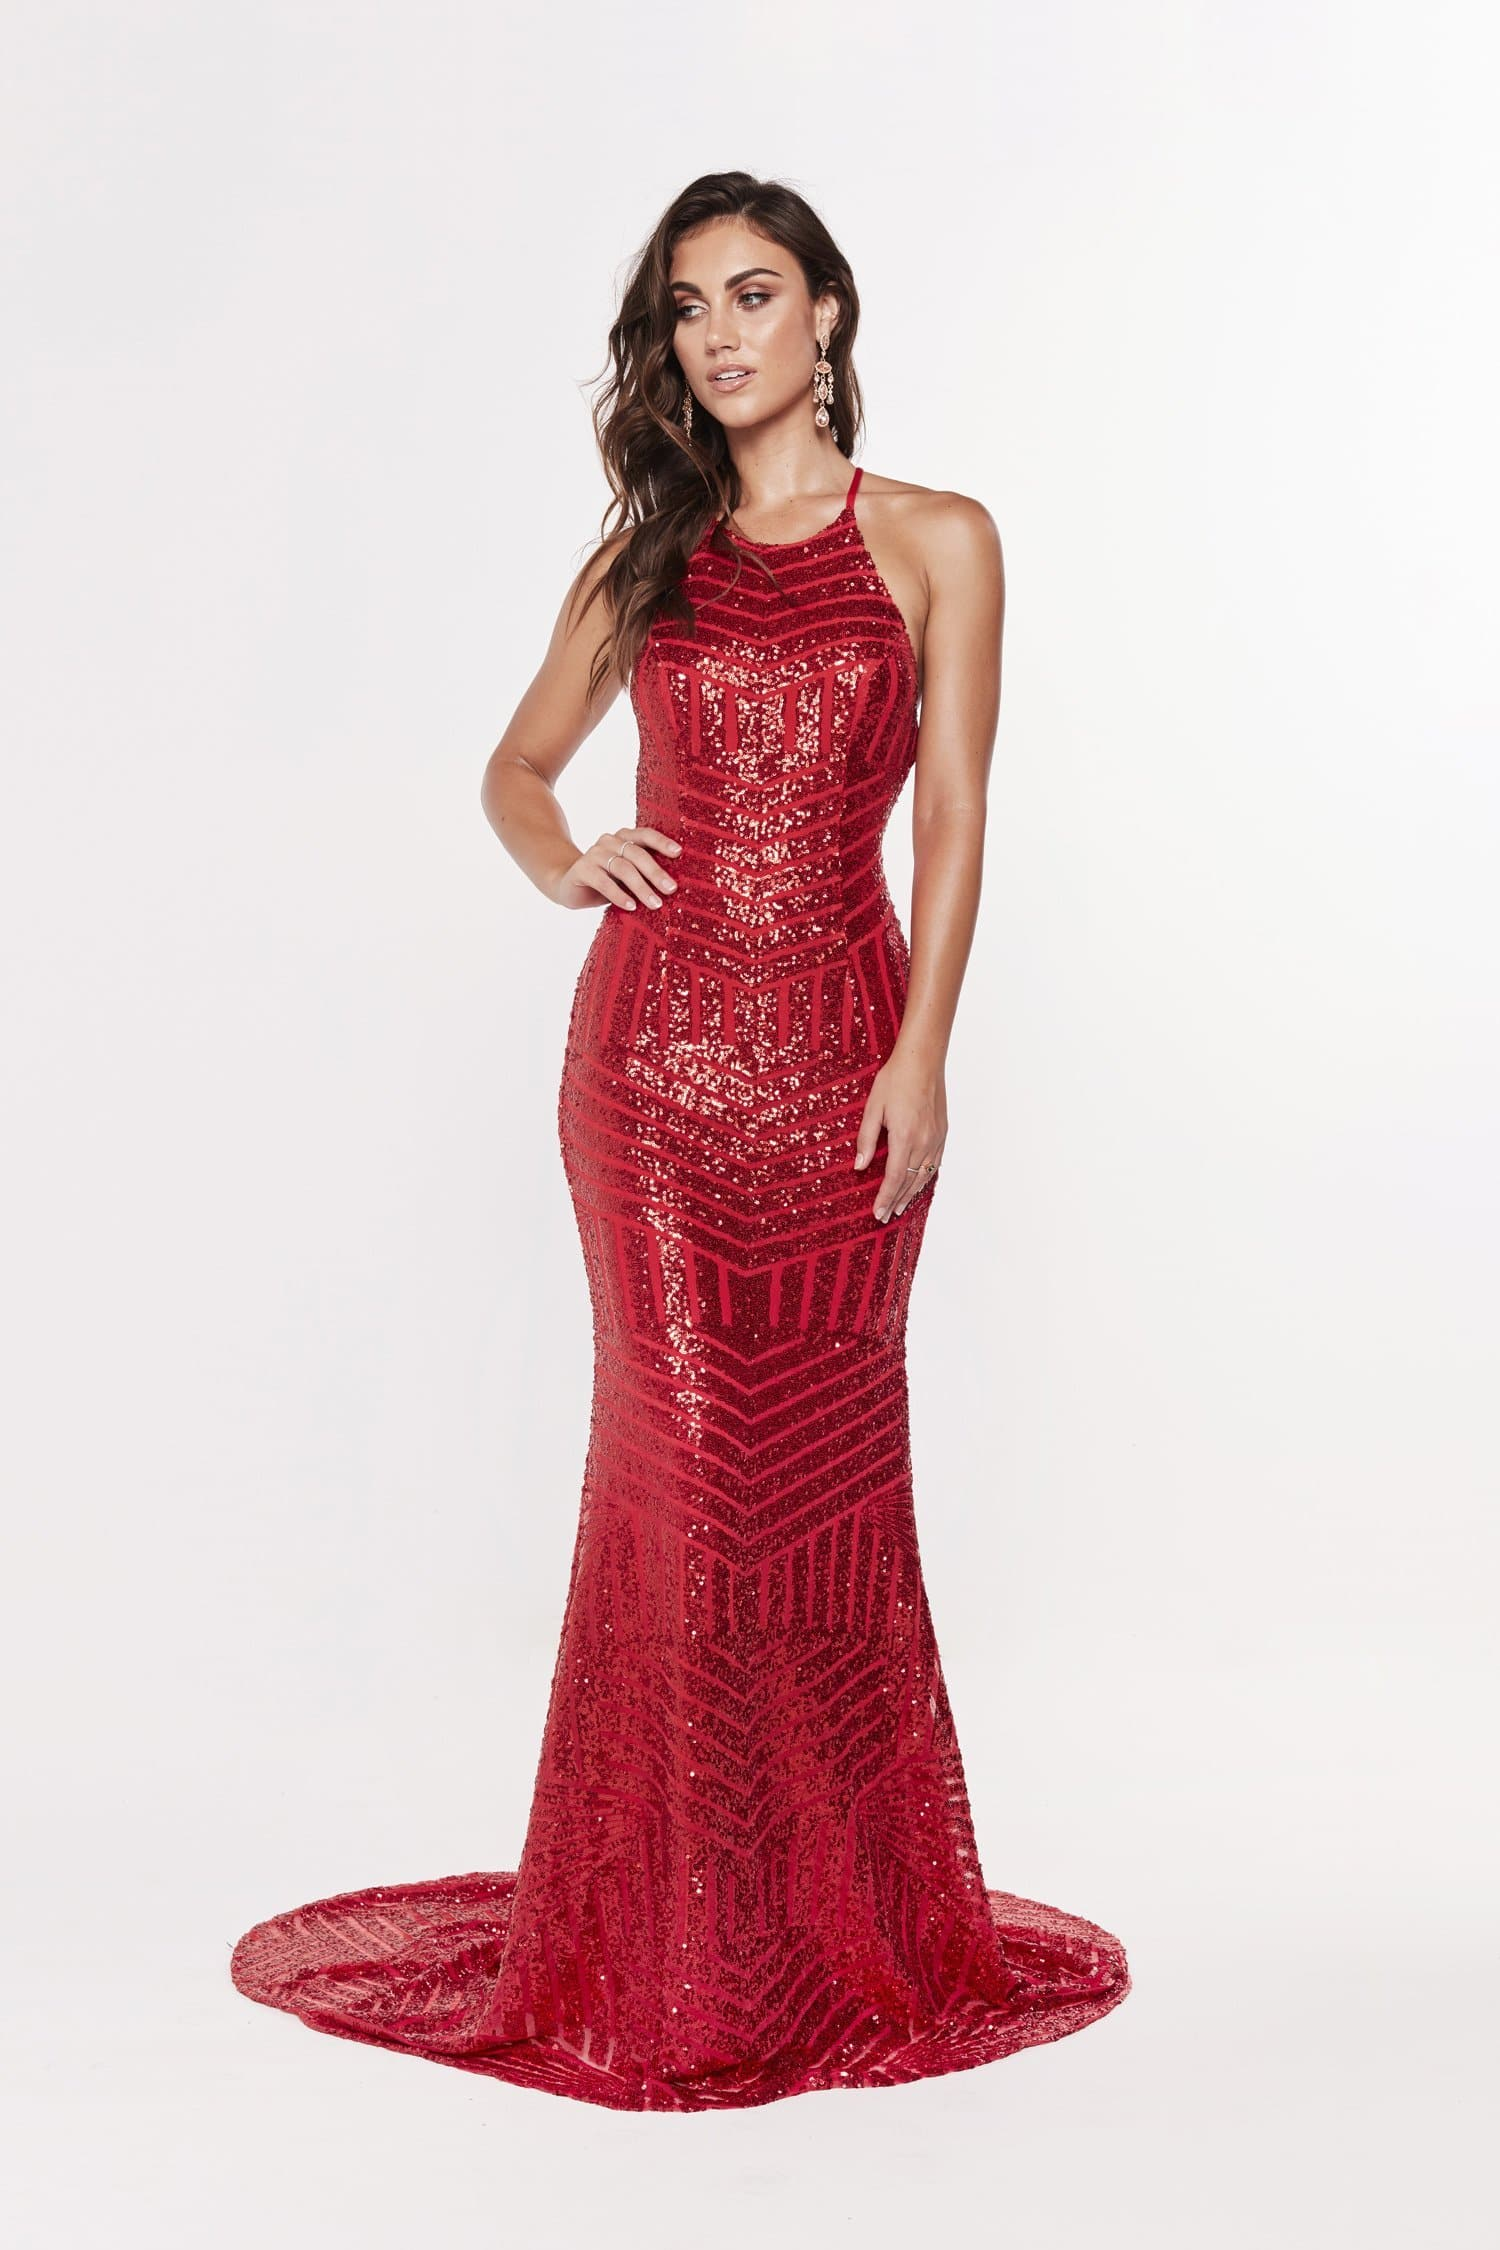 A&N Aniya Lace Up Sequin Gown - Red Prom Dress